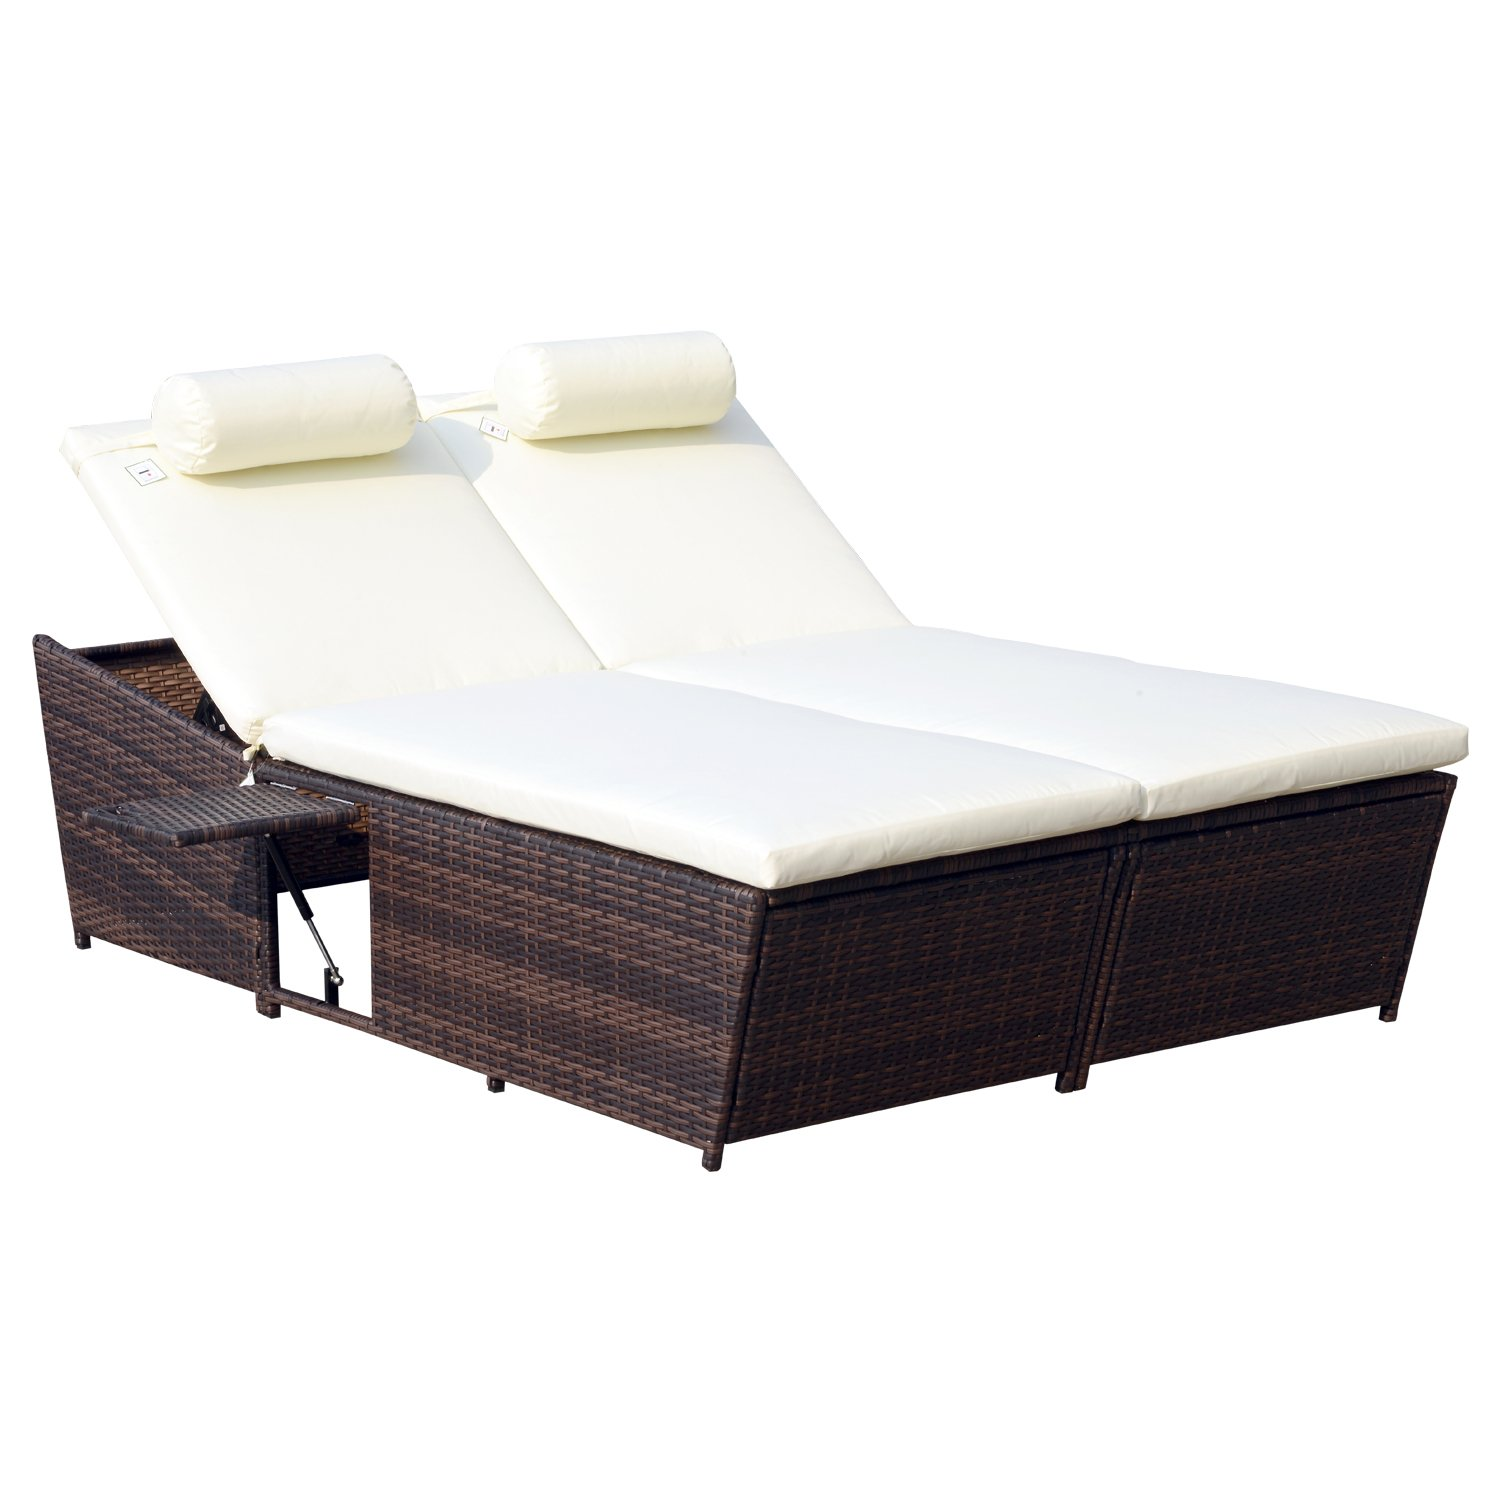 Amazoncom Outsunny Outdoor Rattan Wicker 2 Person Daybed W Side Tables